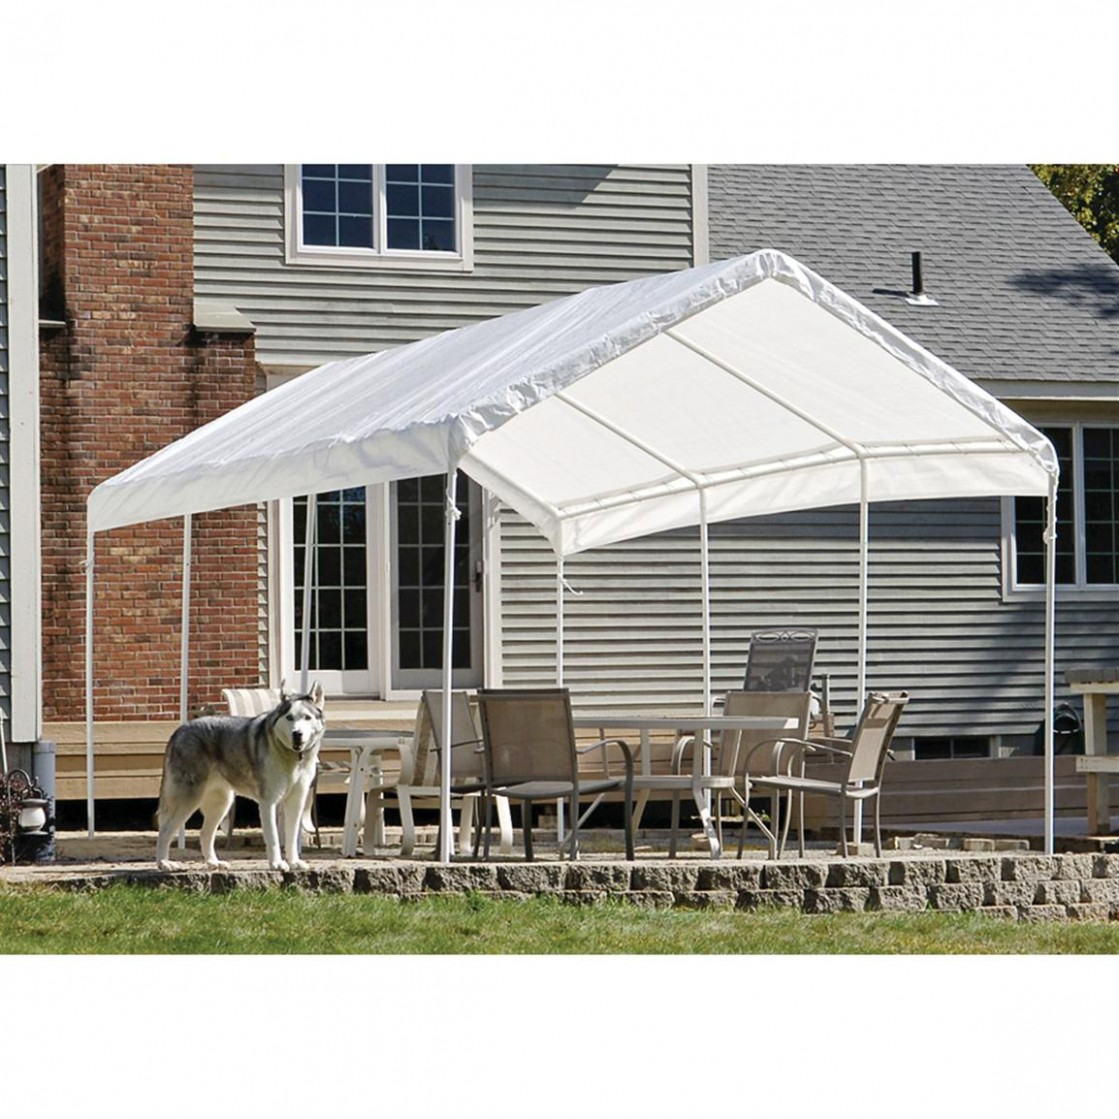 Seven Moments To Remember From Portable Garage Canopy Carport | portable garage canopy carport